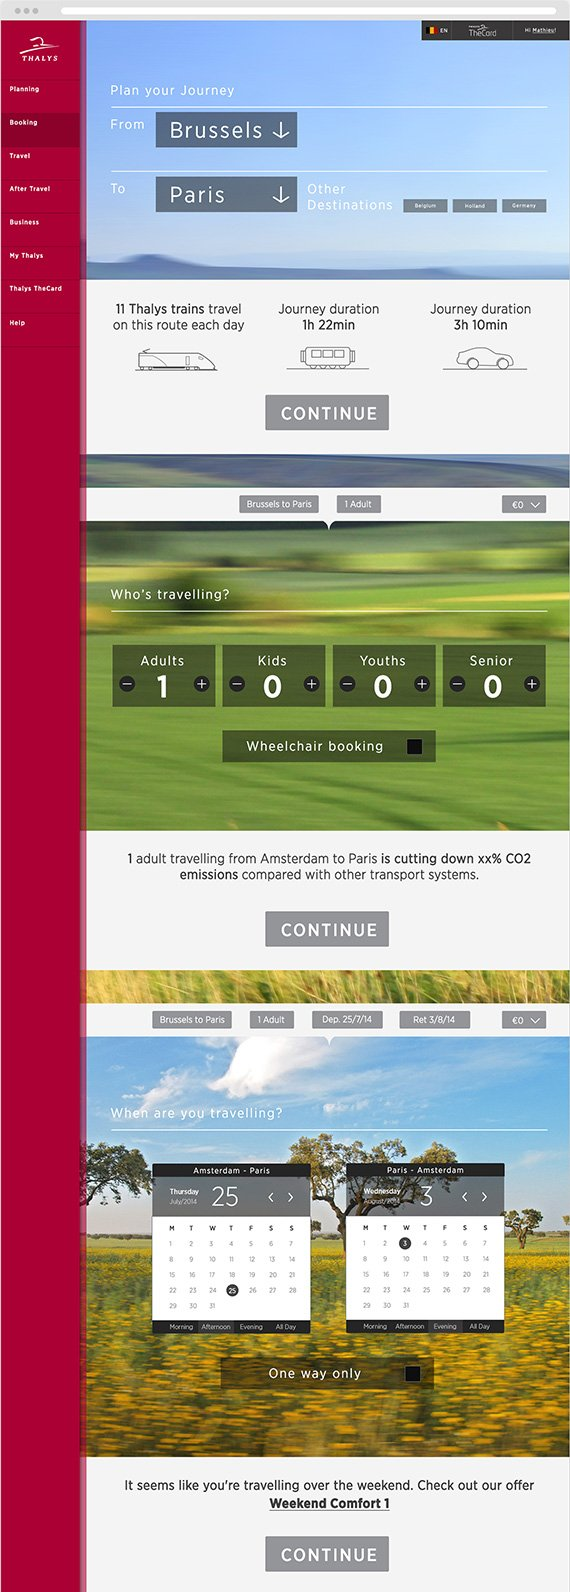 thalys_desktop_booking